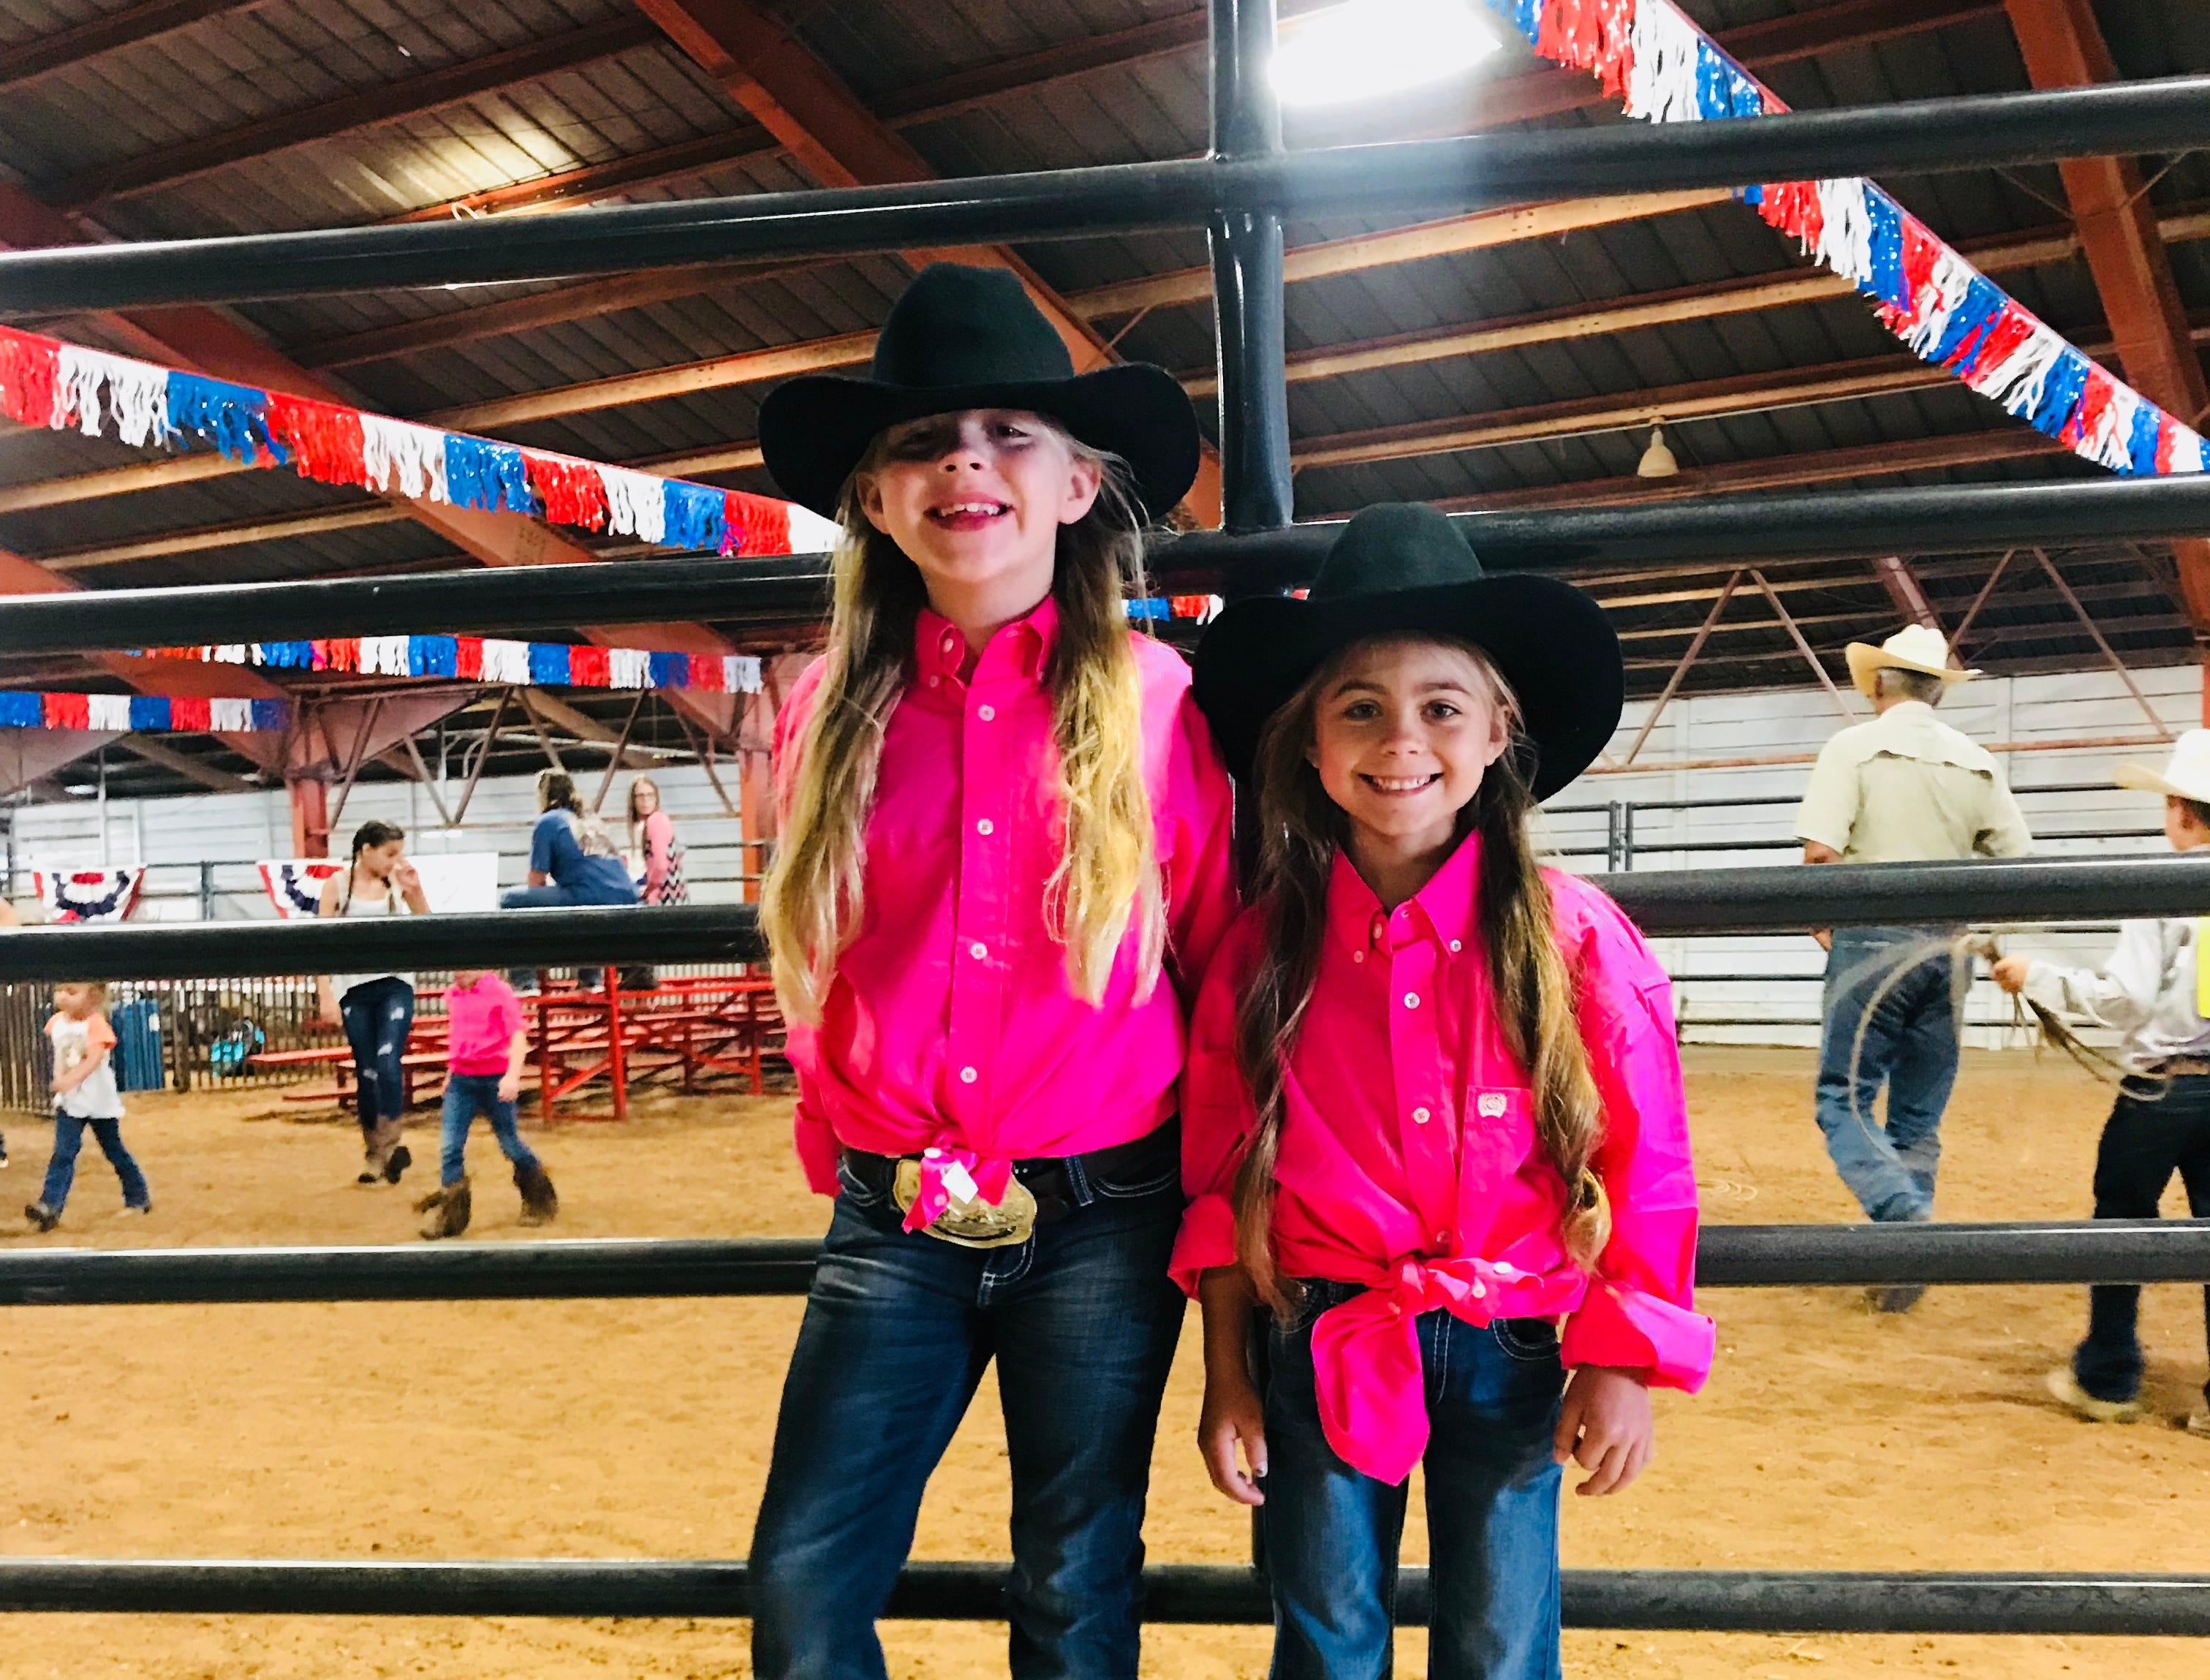 Charley June and Haven, Six White Horse Girls, attend the Haney Canon Stick Horse Rodeo at the 34th annual Western Heritage Classic.